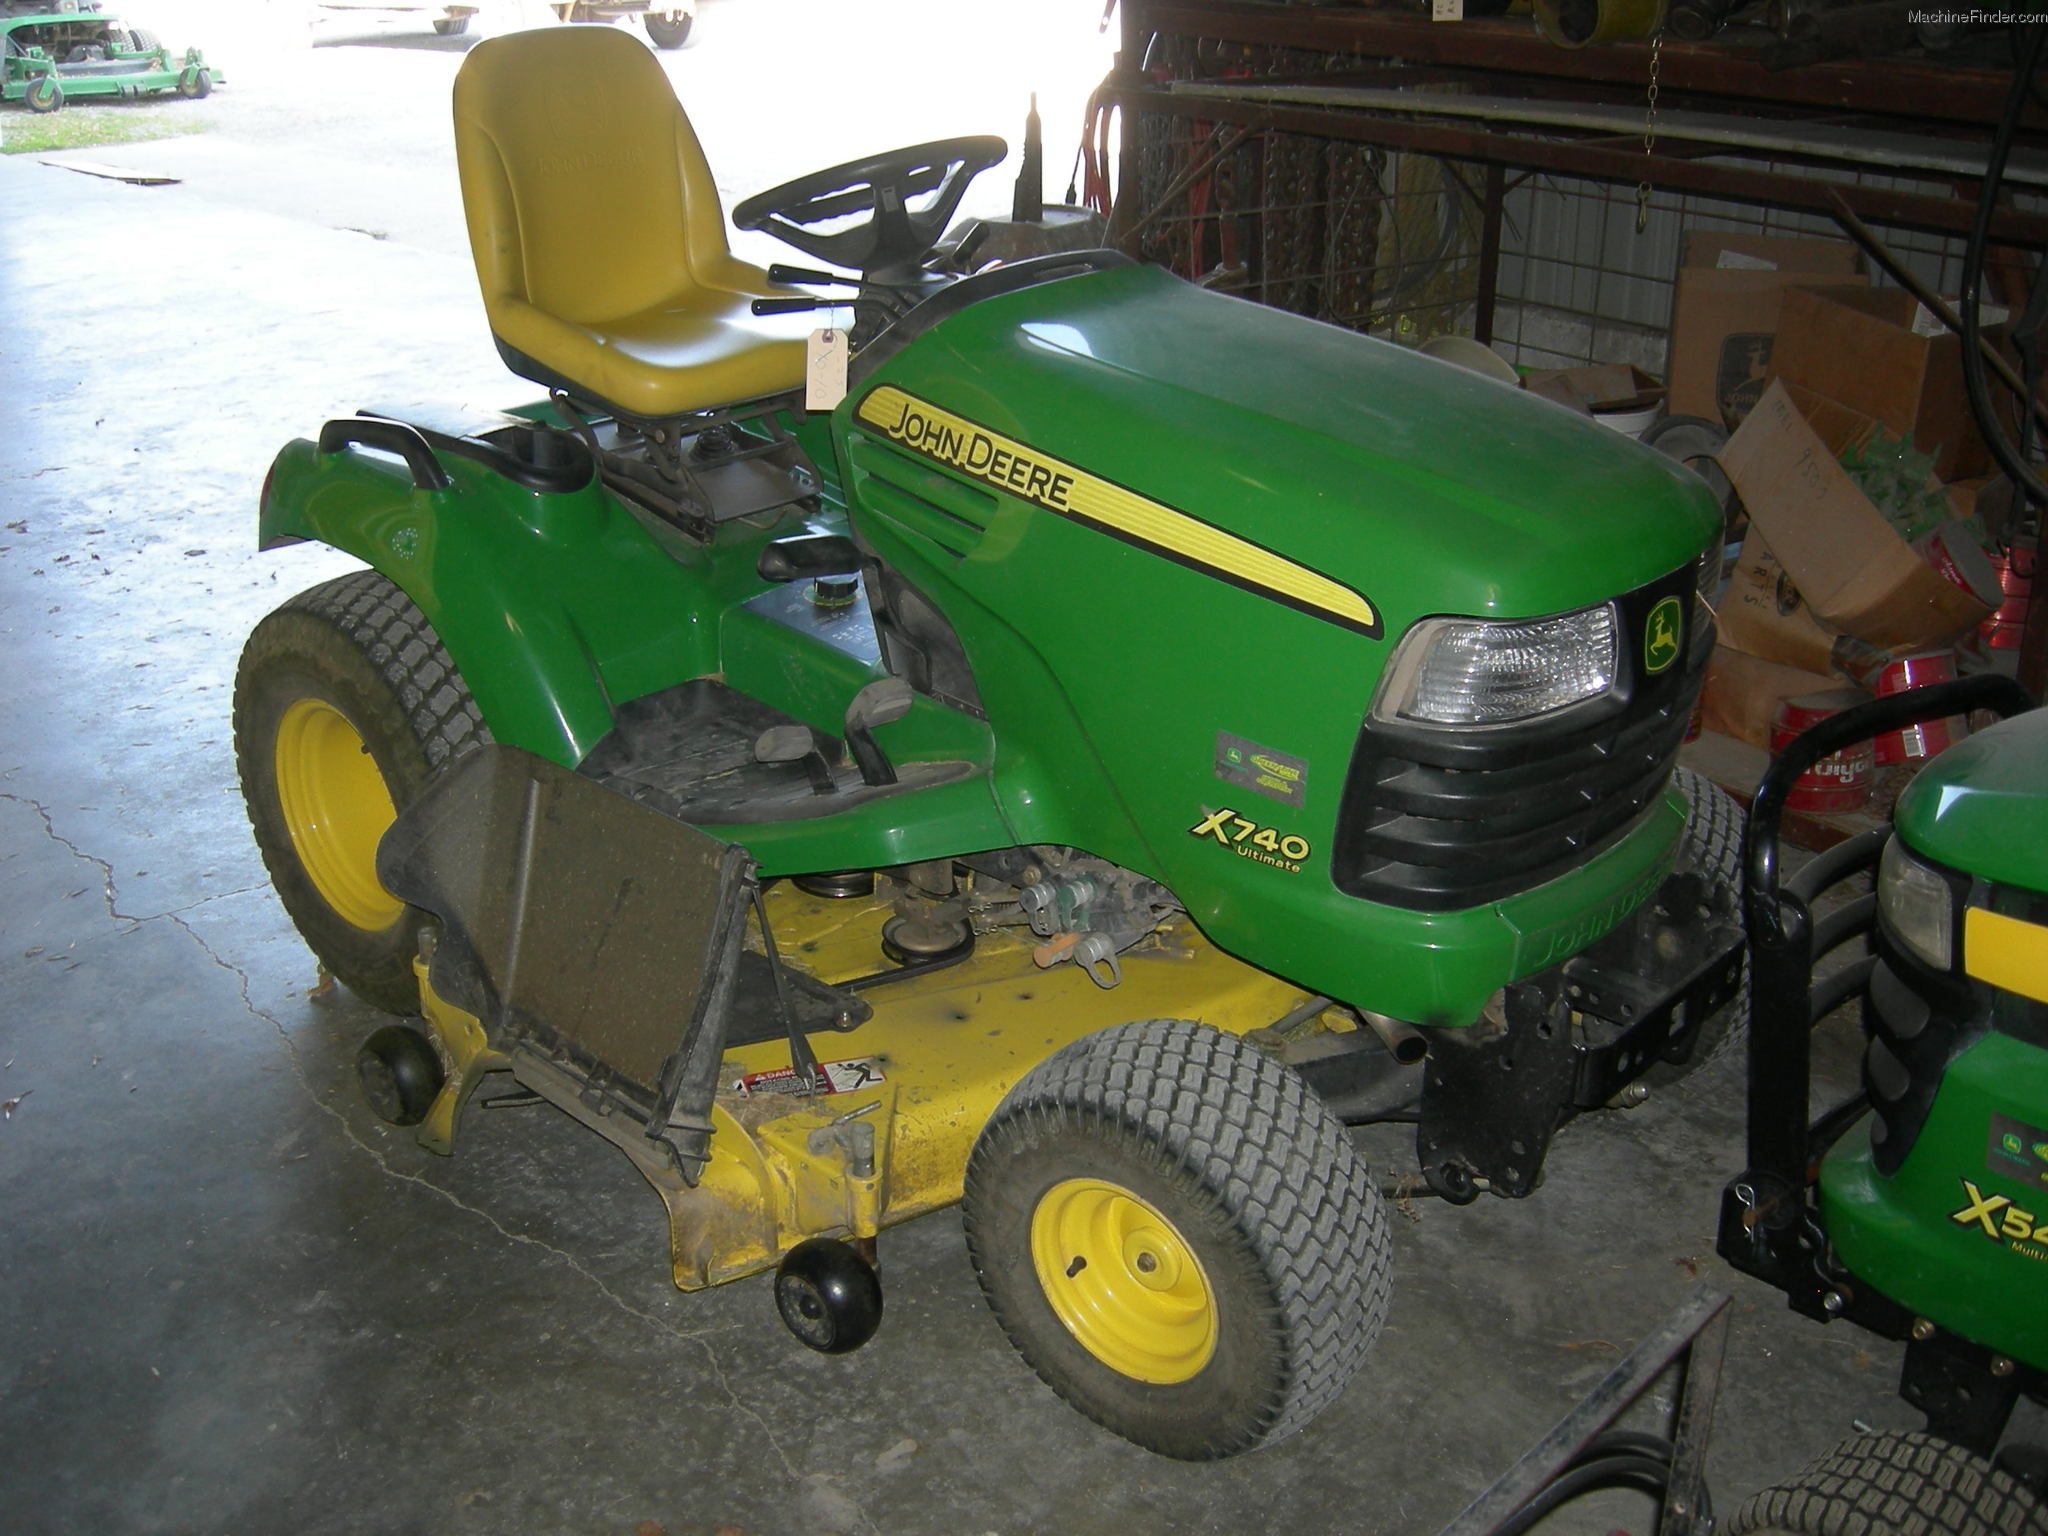 2007 John Deere X740 w 62C mower Lawn & Garden and .